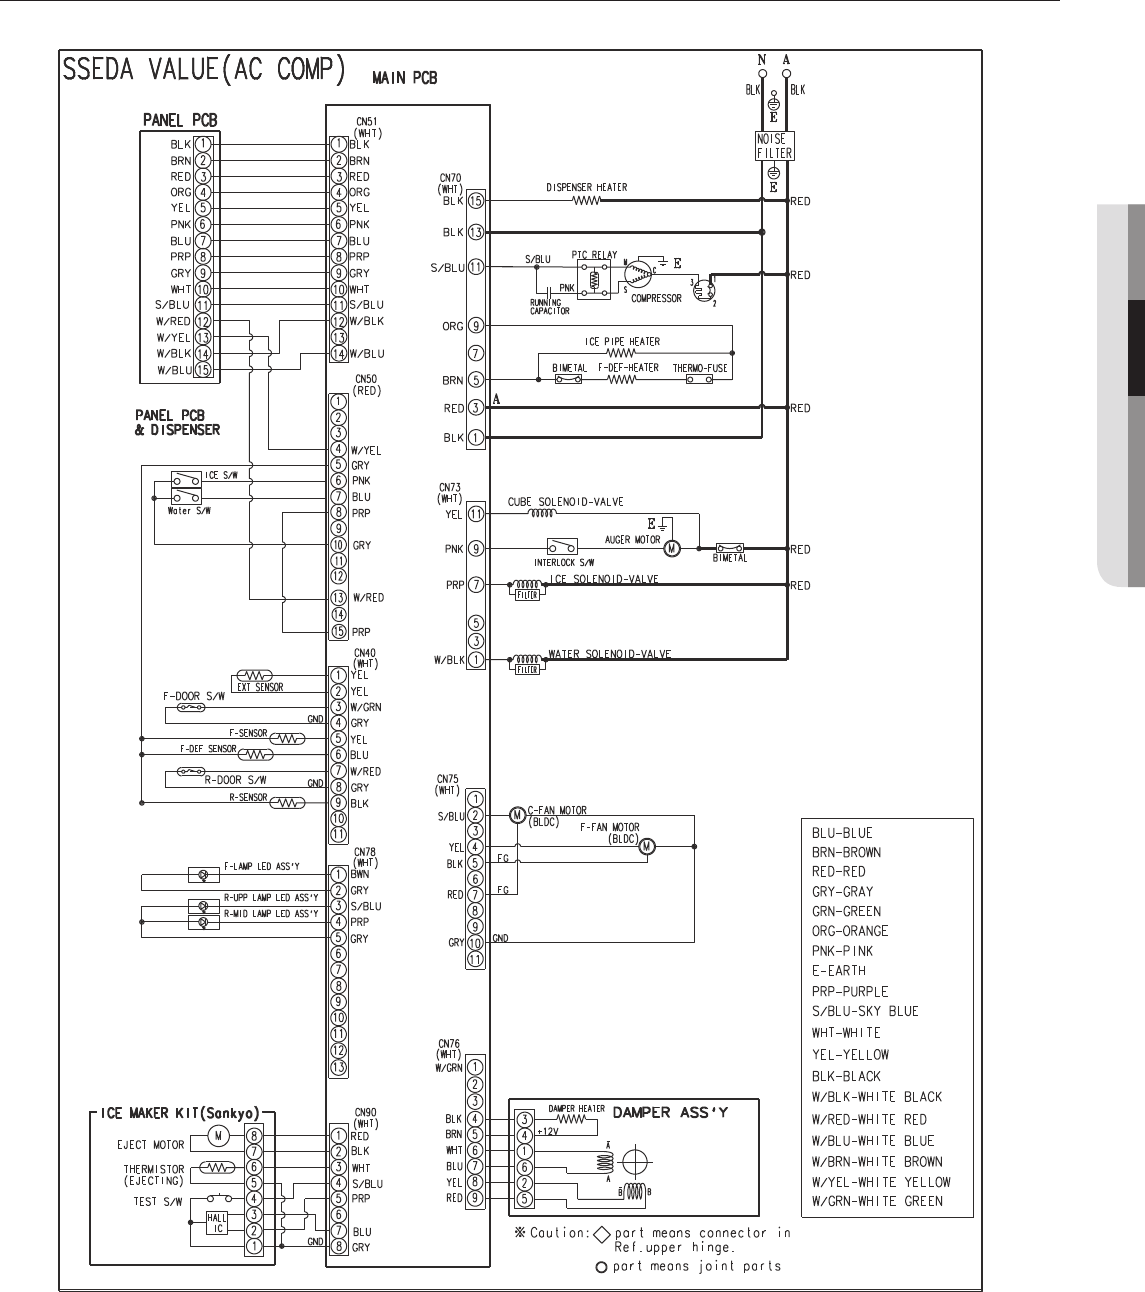 21aa6212 5c03 4539 ac02 99a0885d5c5e bg1f page 31 of samsung refrigerator rs261mdwp user guide wiring diagram for a refrigerator compressor at crackthecode.co